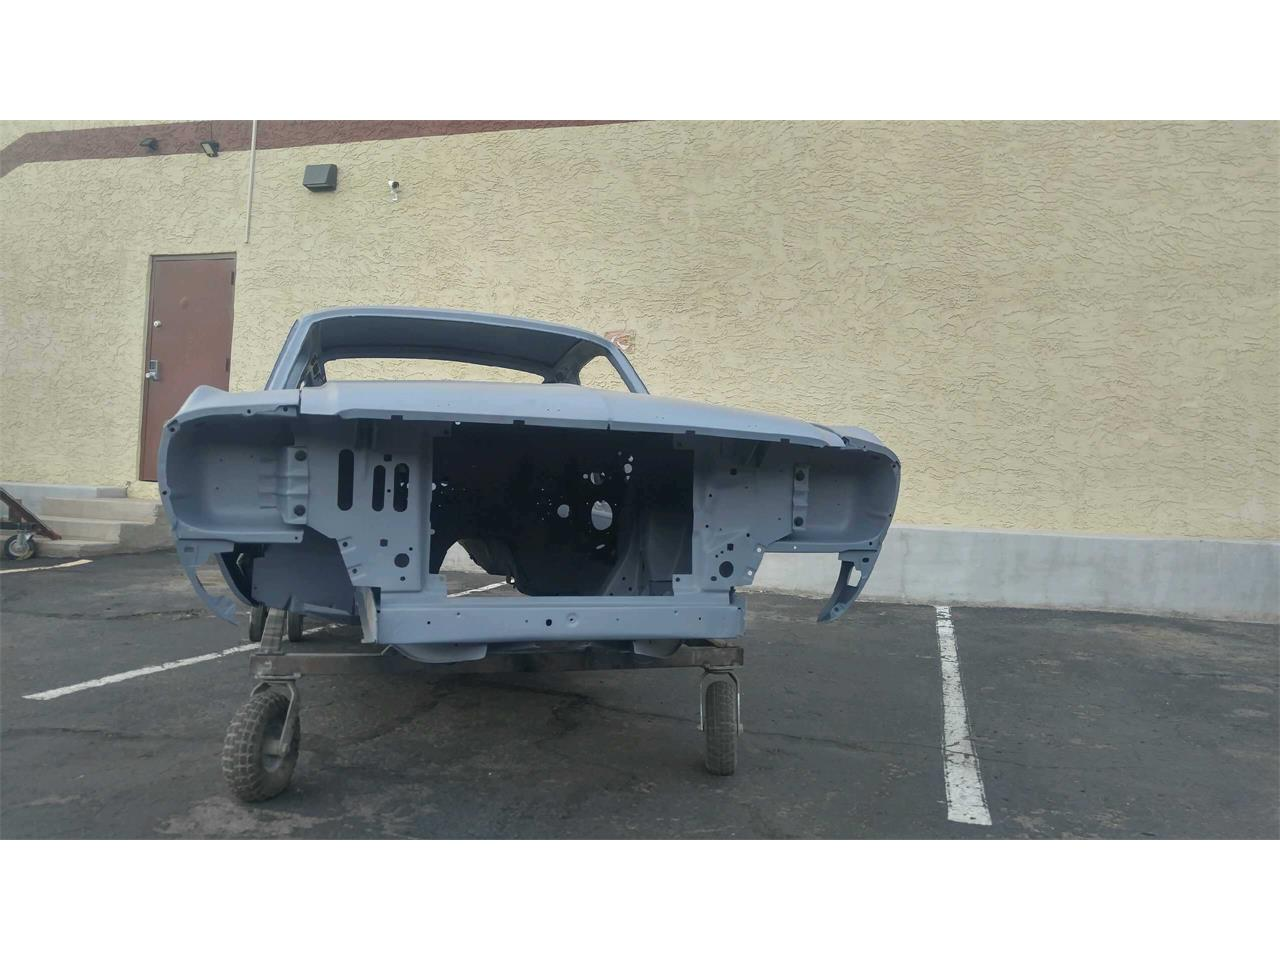 Large Picture of Classic '68 Ford Mustang Restored Body Shells located in Scottsdale Arizona - $16,700.00 Offered by Desert Classic Mustangs - JP9Q